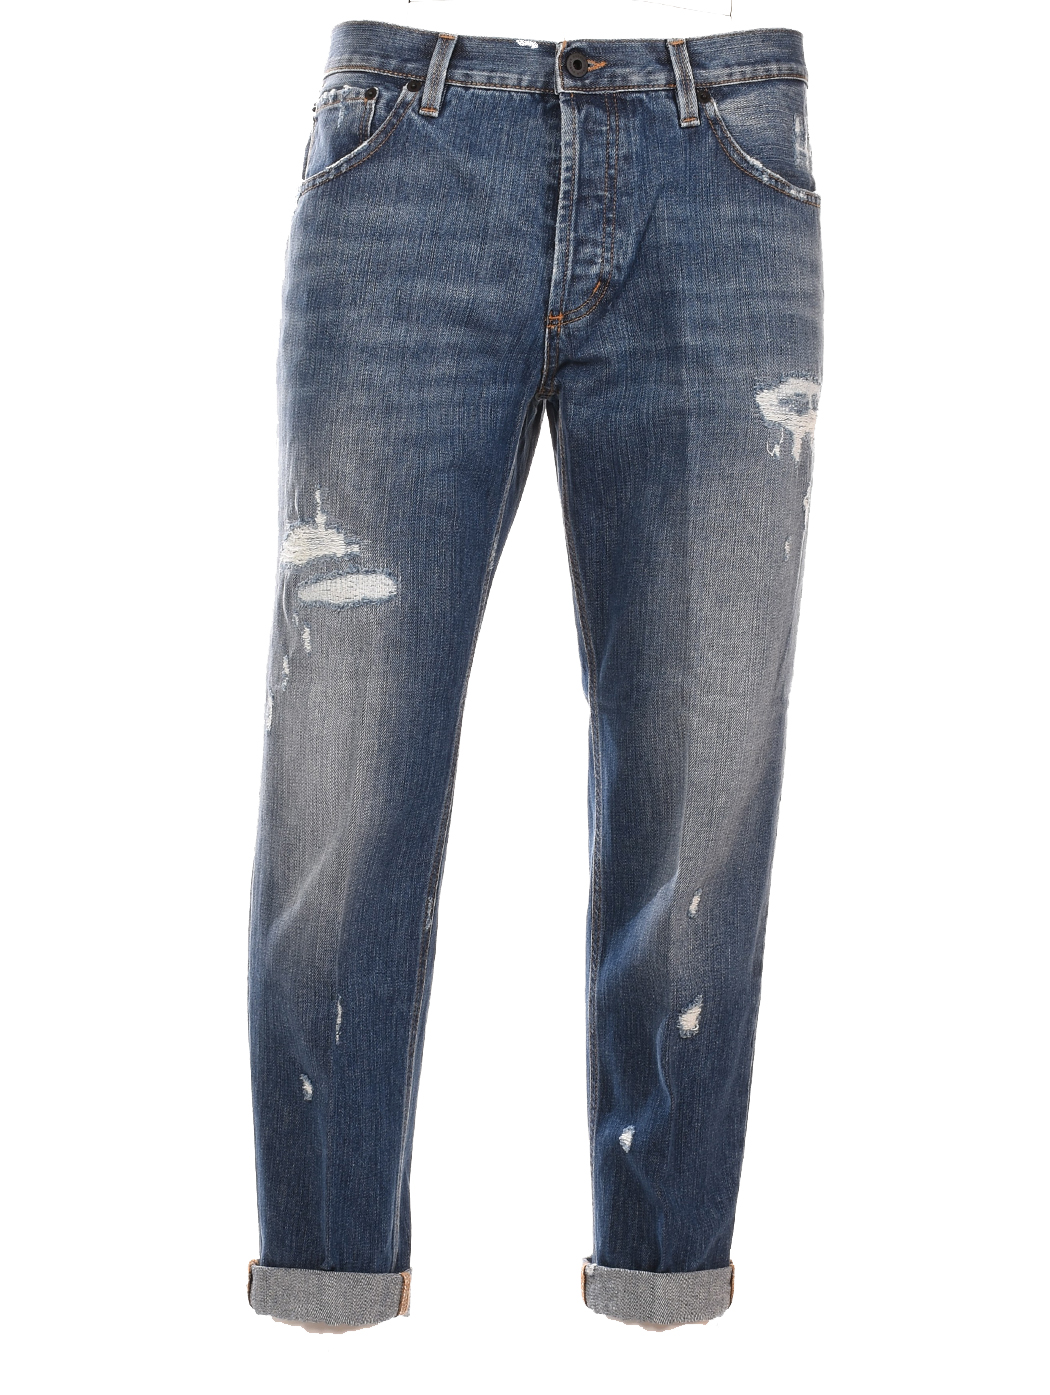 DONDUP UP434 DU800 JEANS